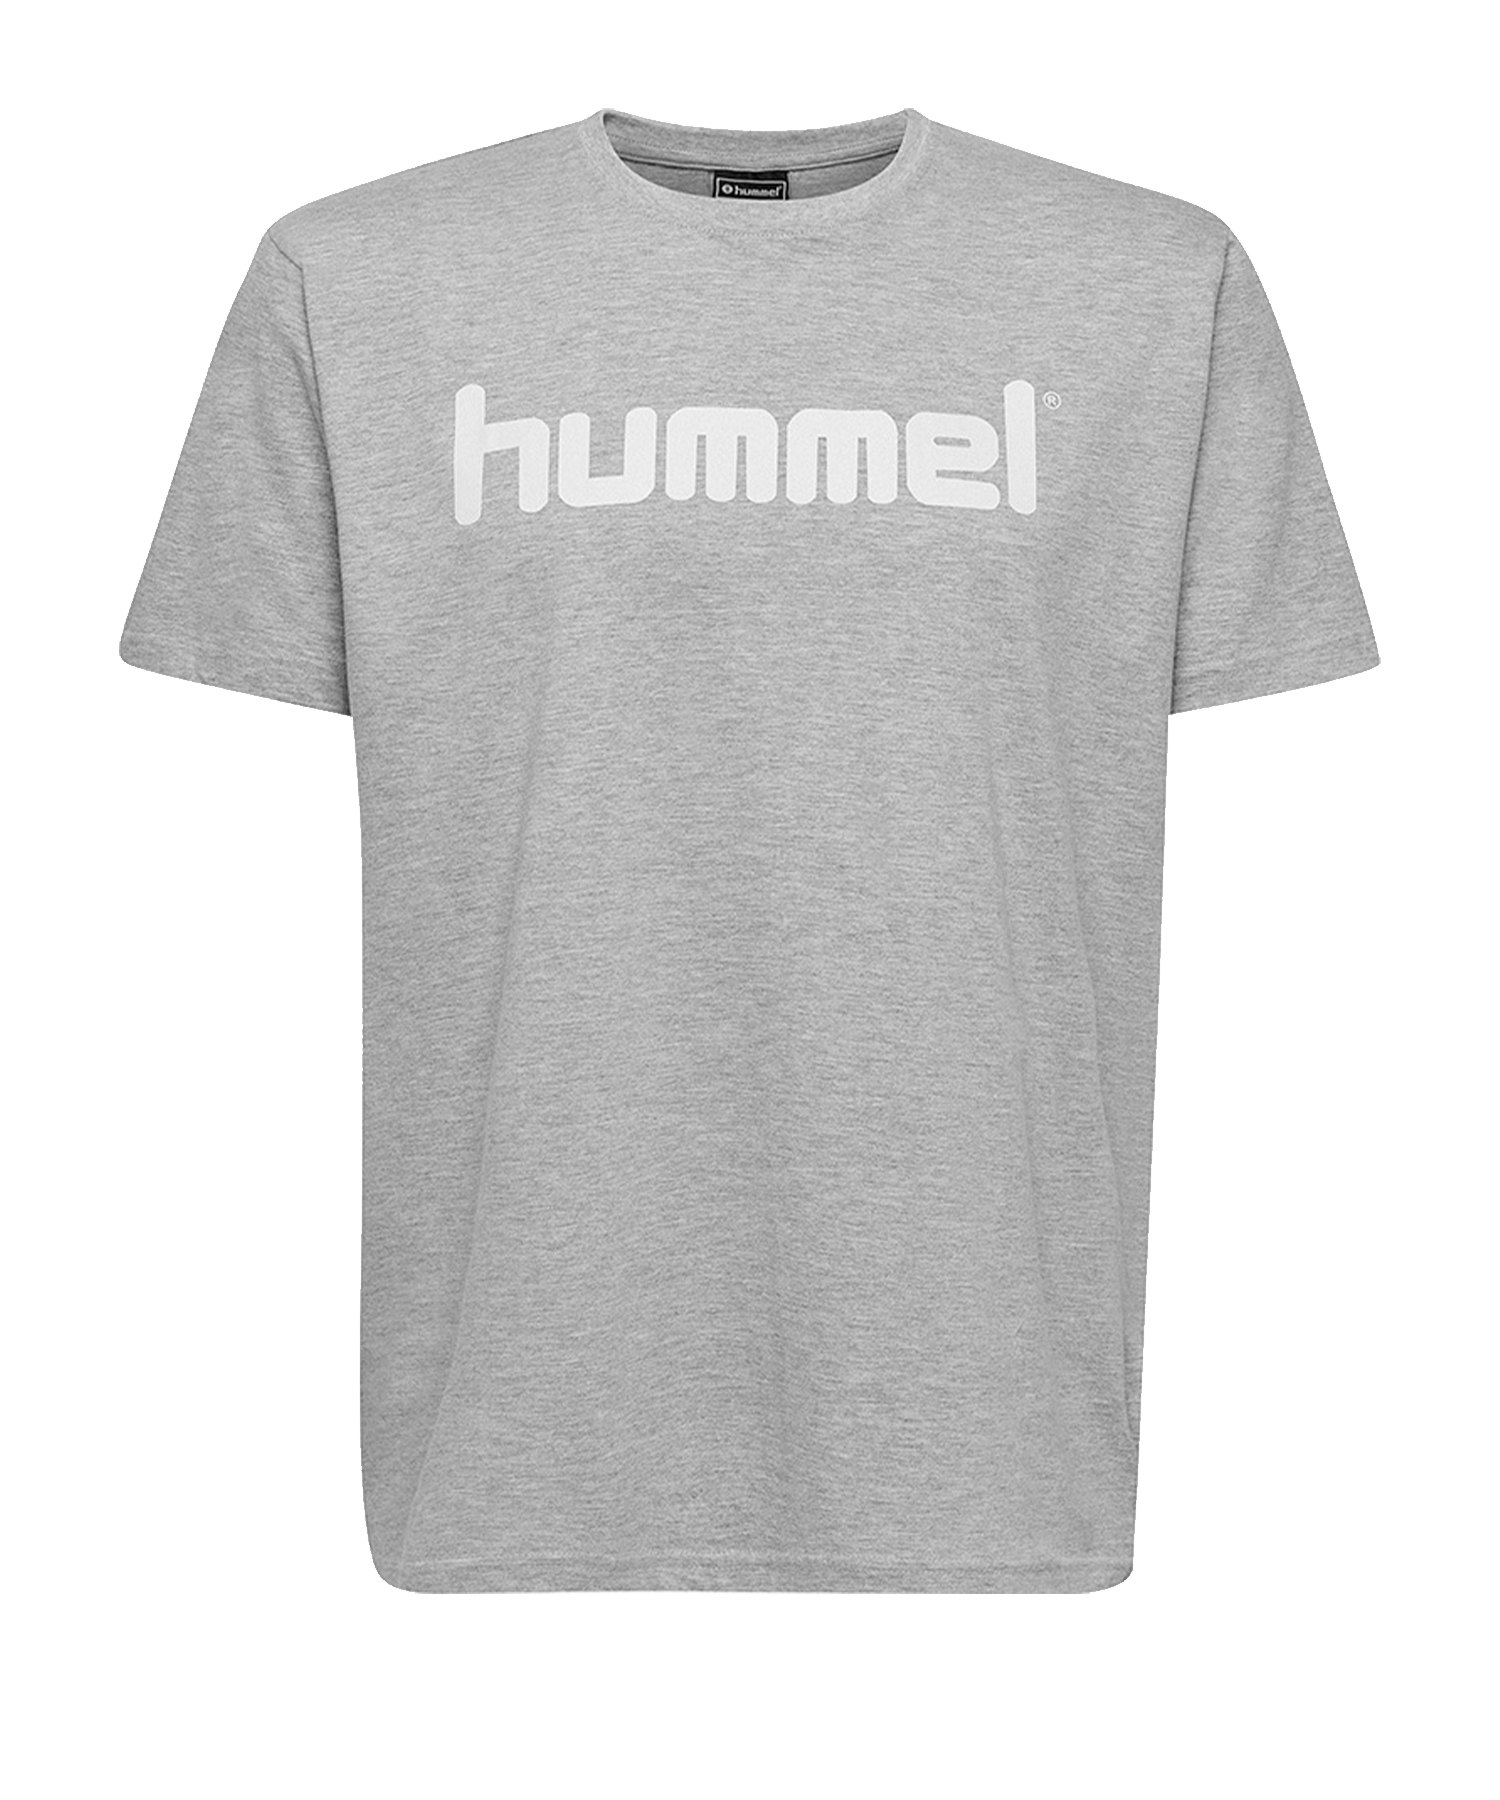 Hummel Cotton T-Shirt Logo Kids Grau F2006 - Grau